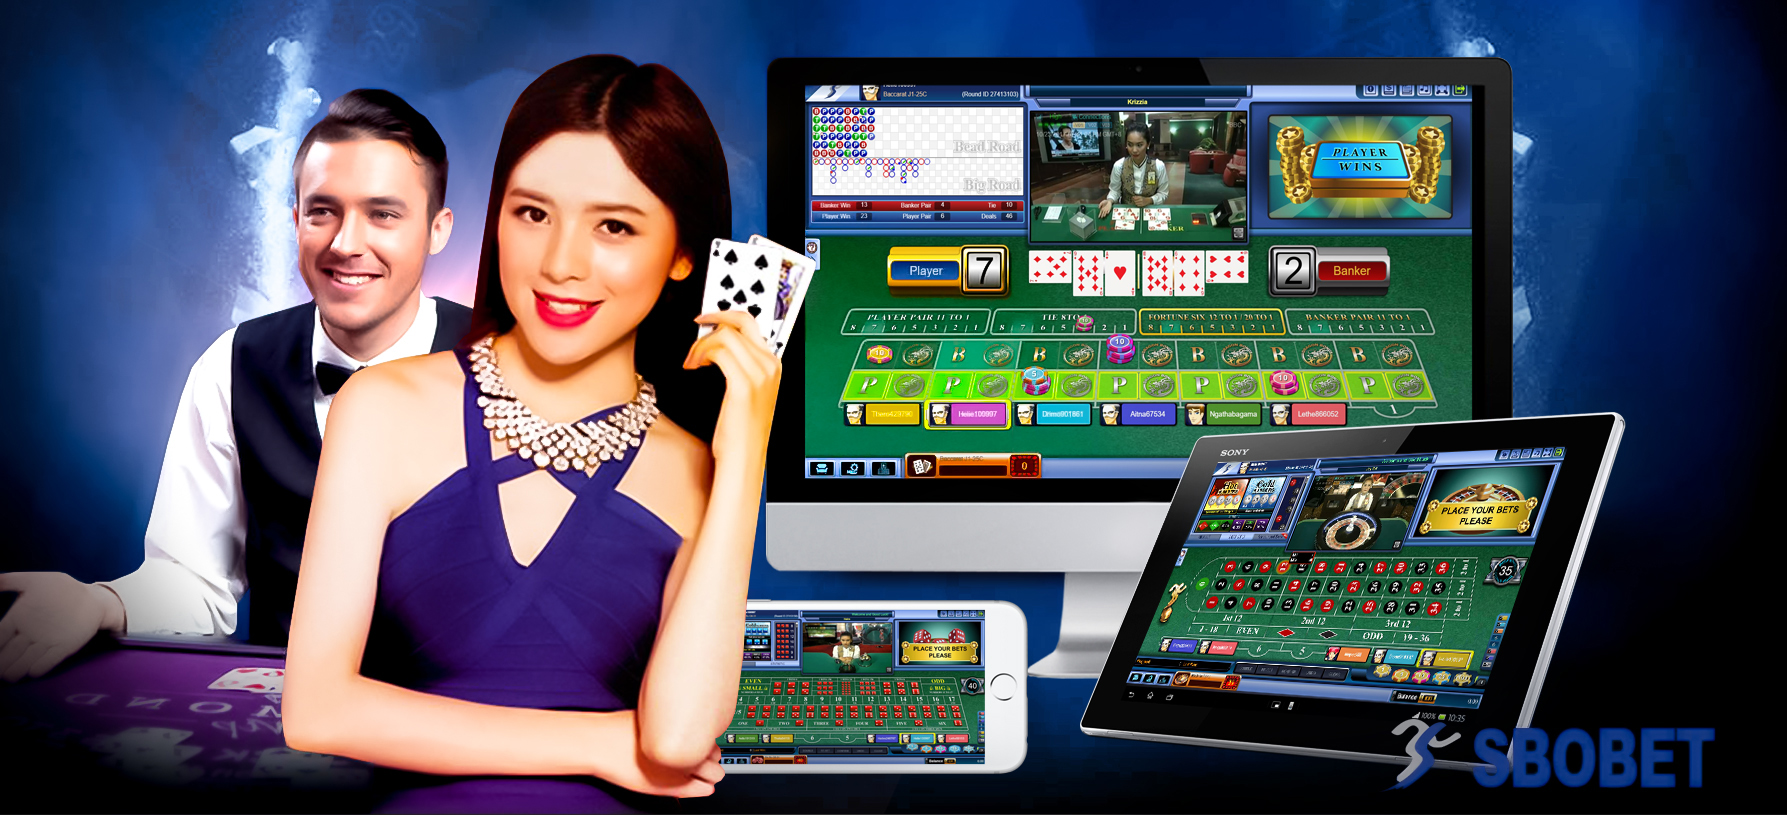 Searching For A Video Poker Bug Made person in the community